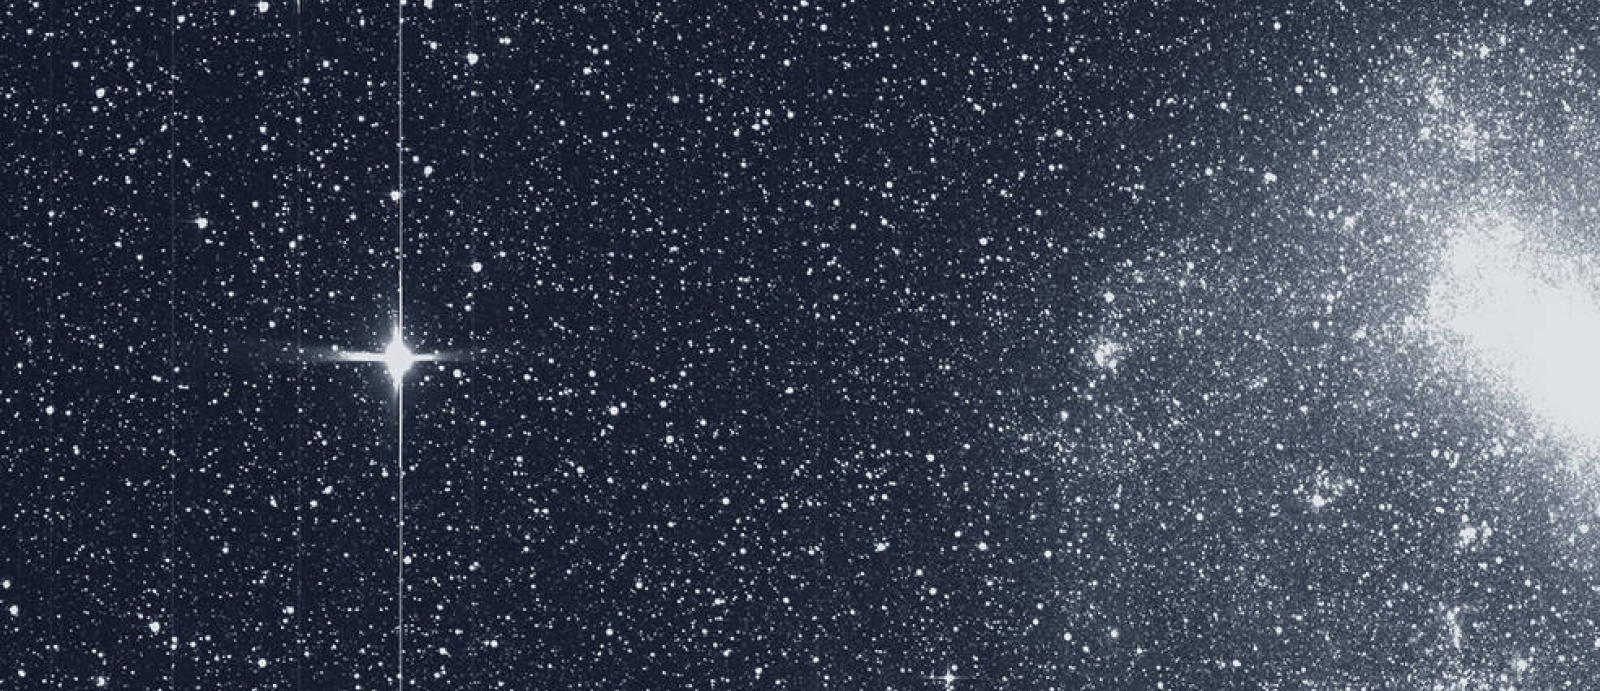 Captured image of the Large Magellanic Cloud and bright star R.